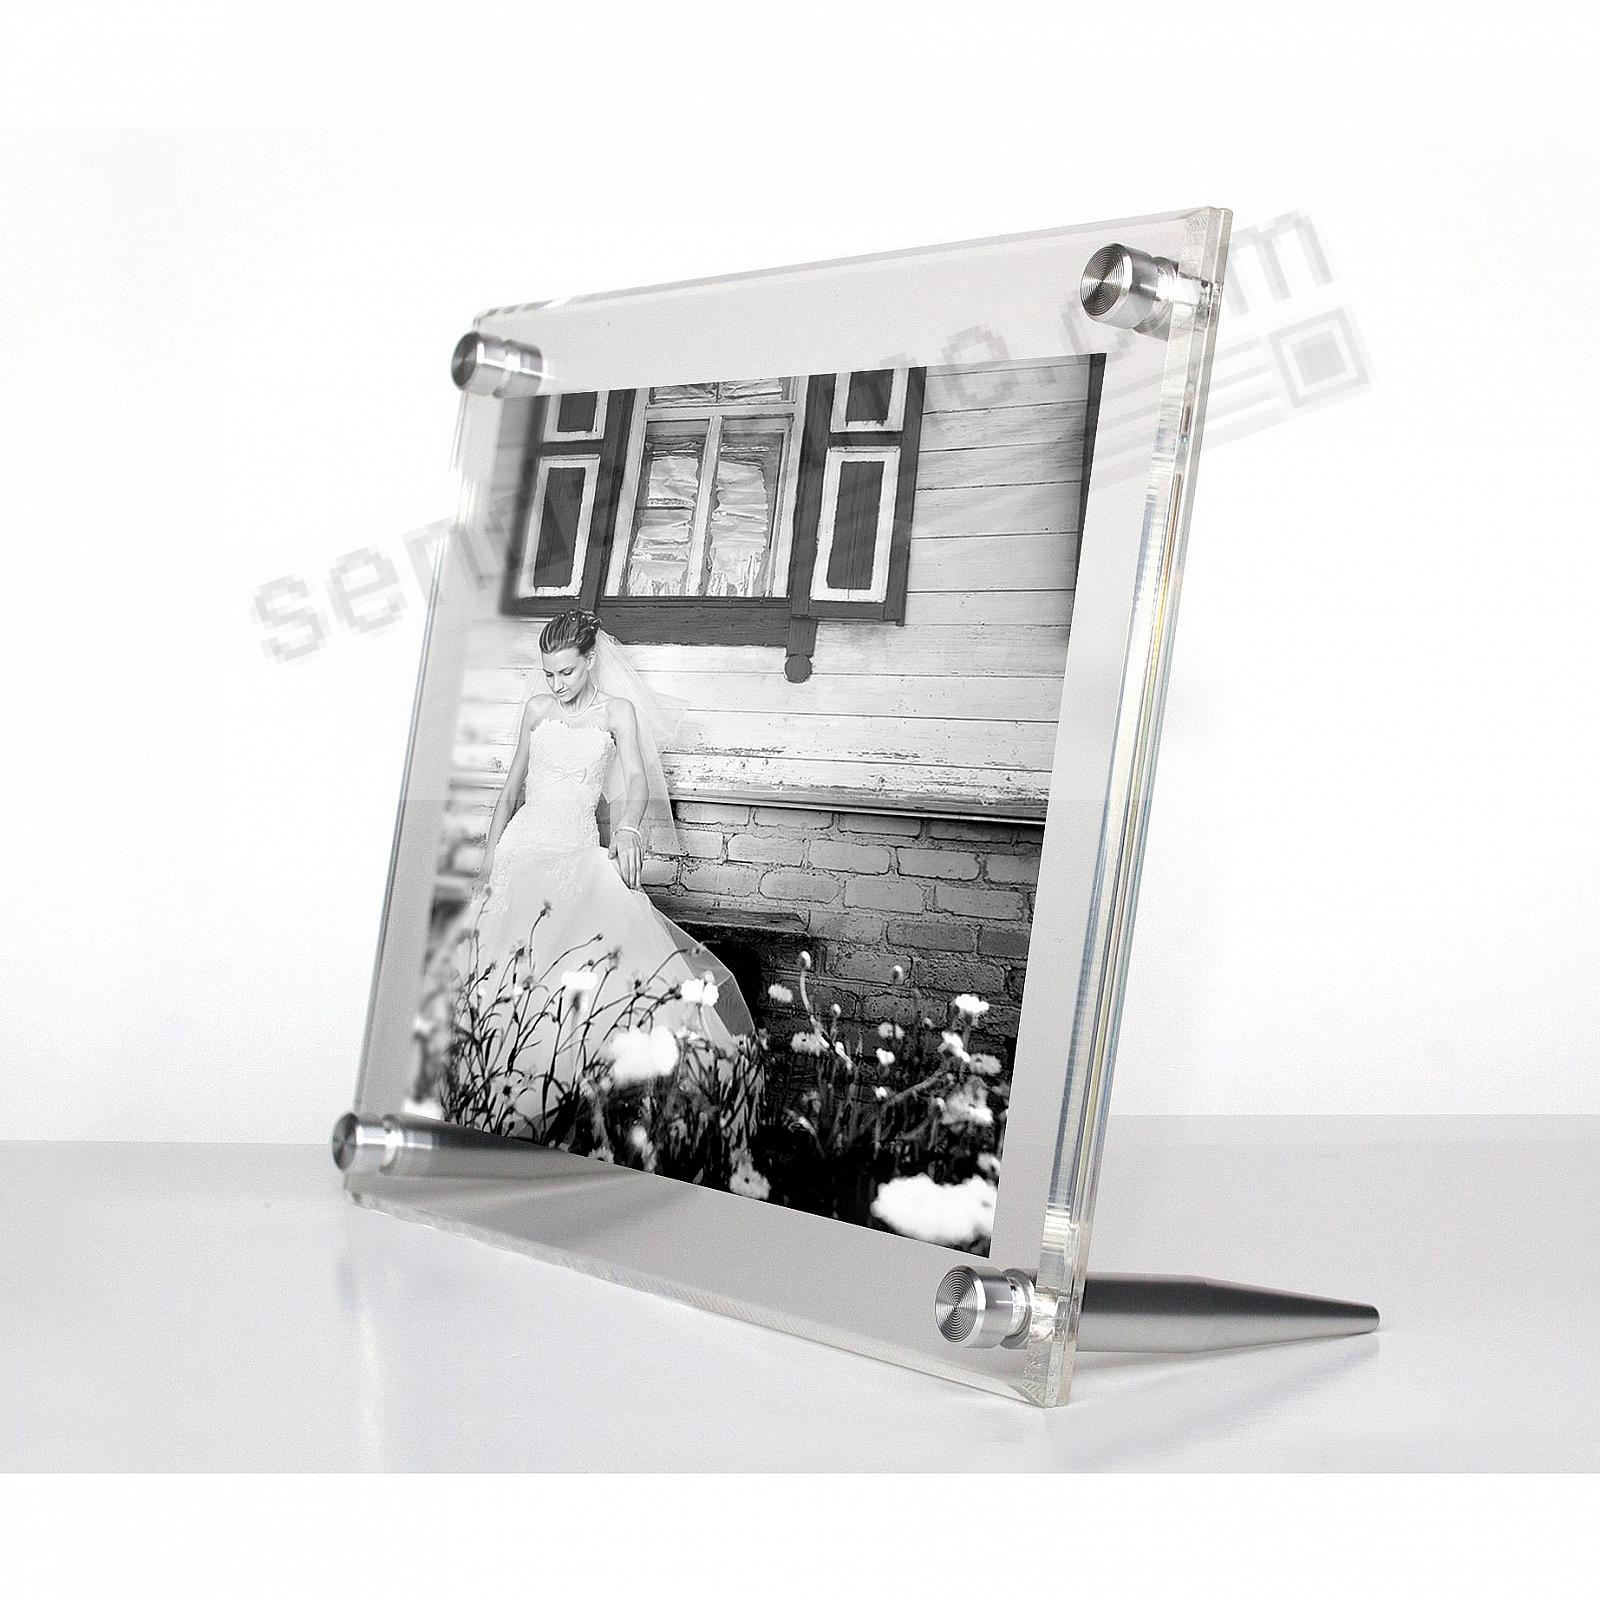 ACRYLIC BEVEL FLOAT CLEAR/Silver Frame 6x8/4x6 by Wexel Art®